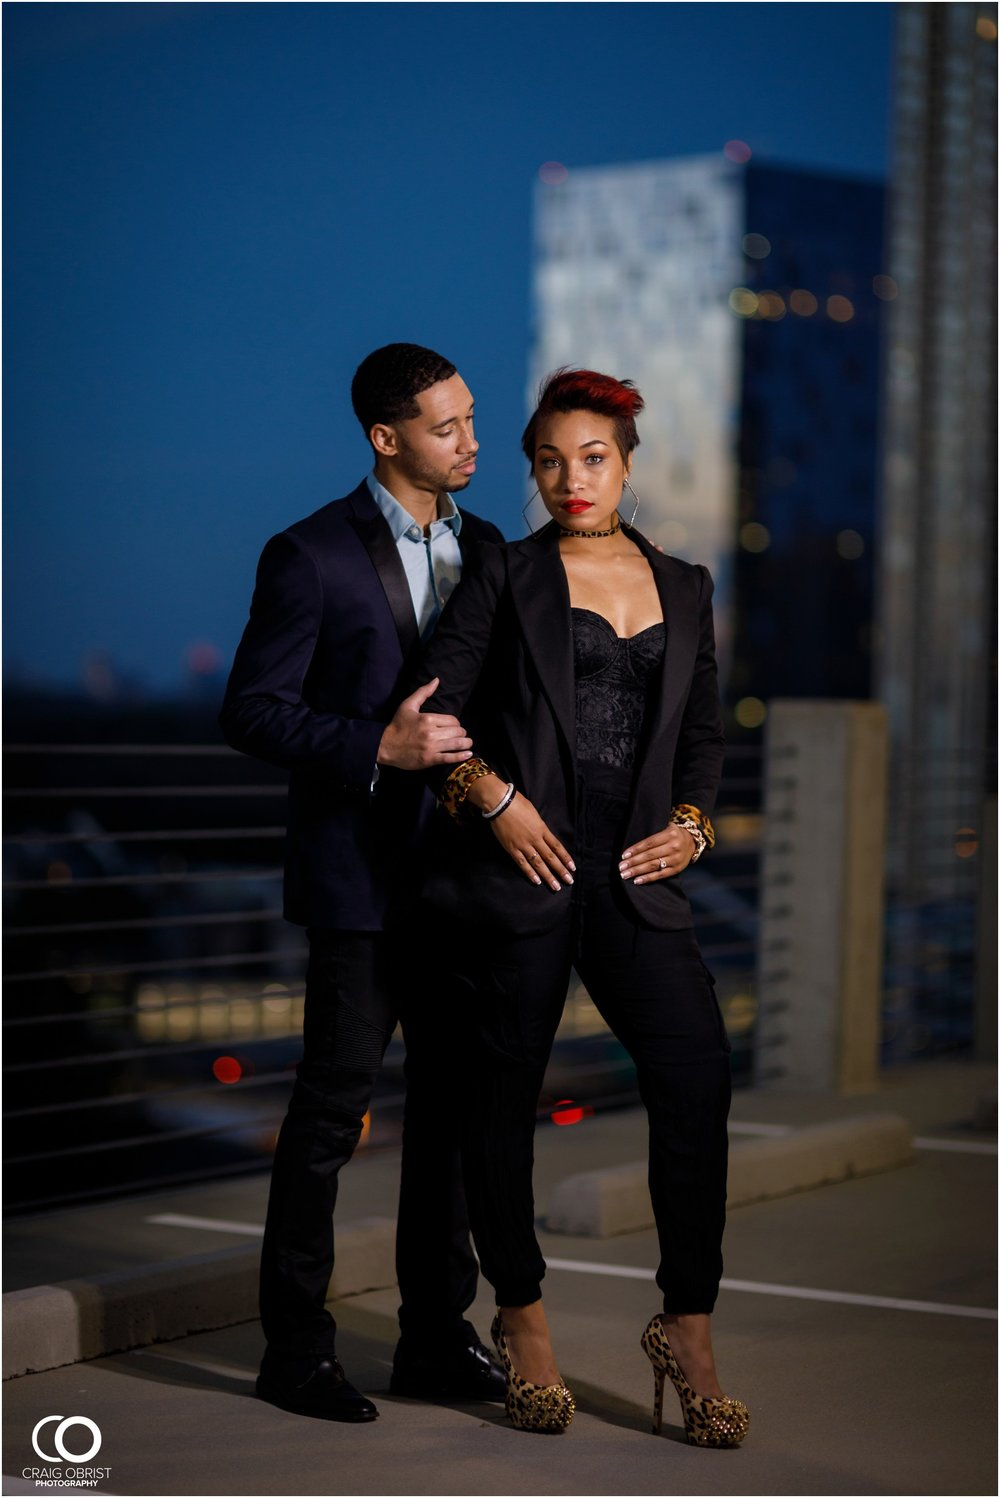 Grand Hyatt Buckhead Skyline Atlanta Engagement Portraits_0038.jpg